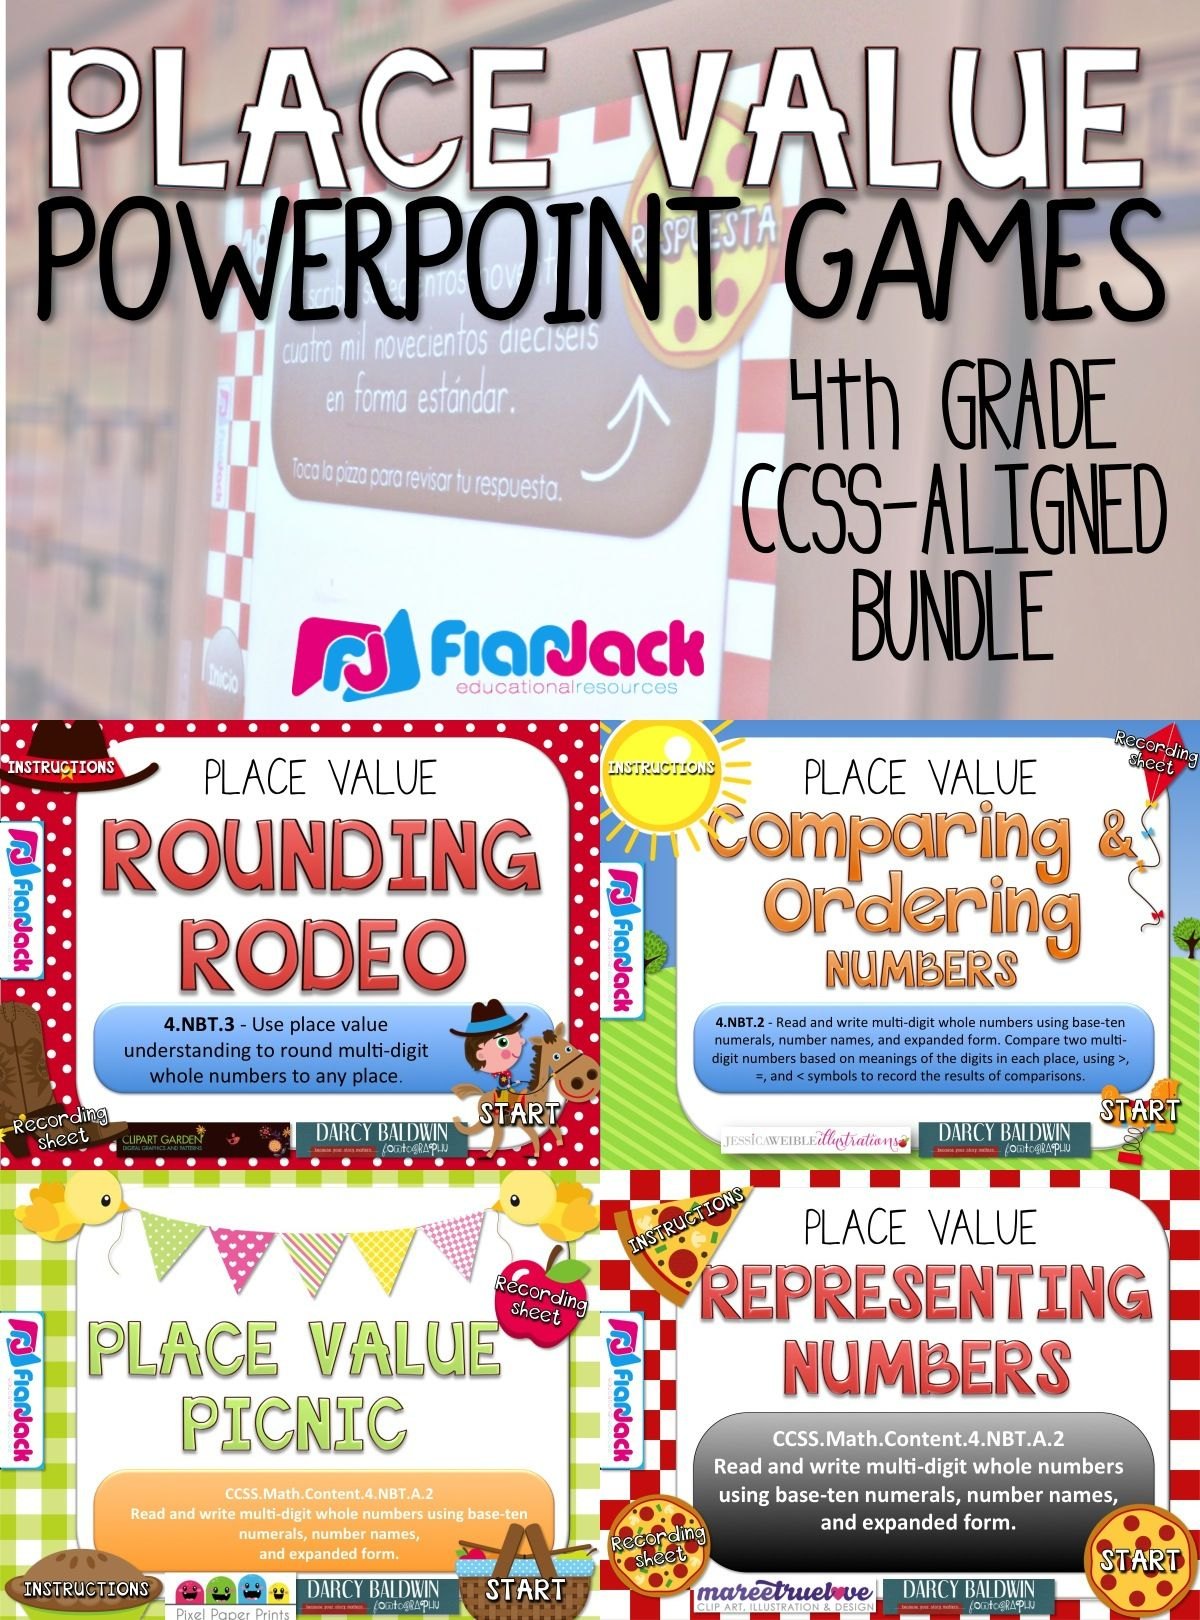 4th grade place value powerpoint games bundle this bundle contains 4 ccss aligned powerpoint games that will motivate your students to practice place  [ 1200 x 1620 Pixel ]